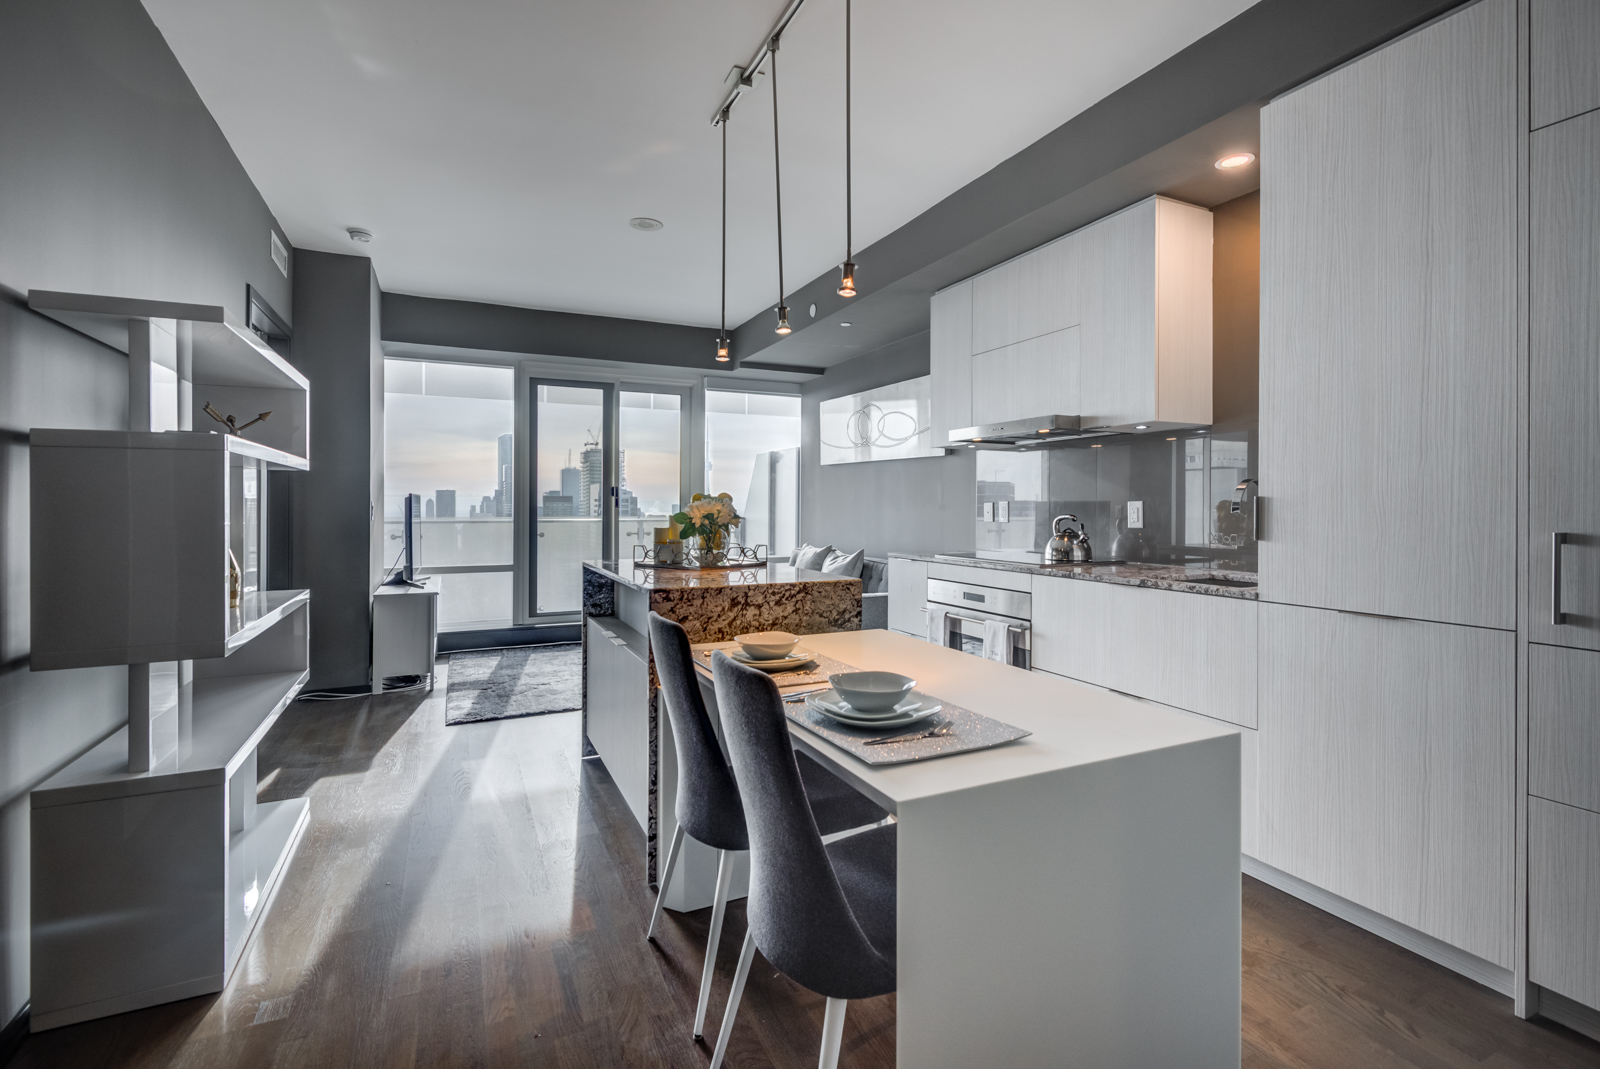 1 Bloor St E Unit 4305 white breakfast bar with two gray chairs and pendant lights.